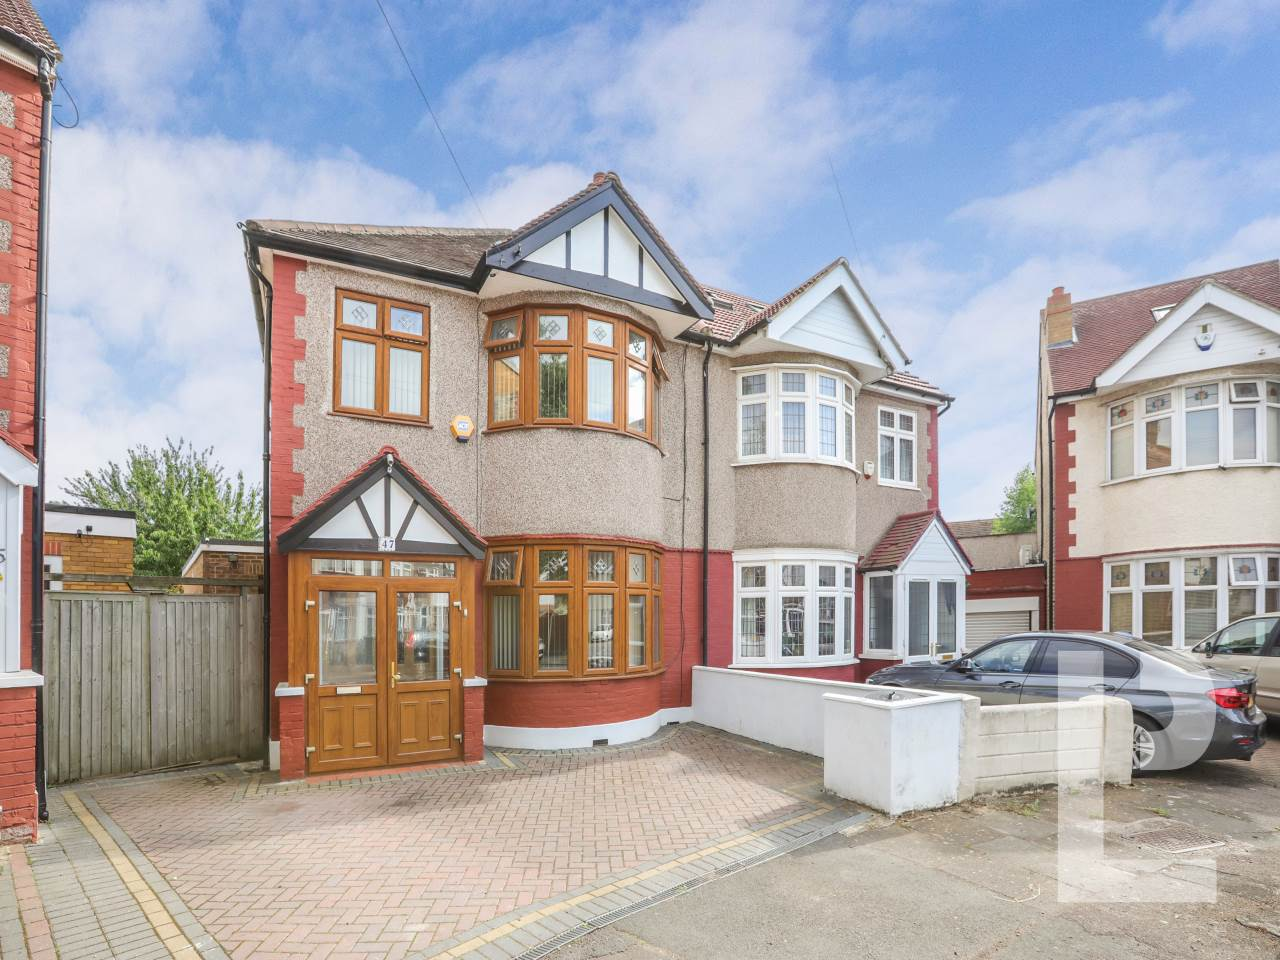 4 bed house for sale in Newbury Park  0